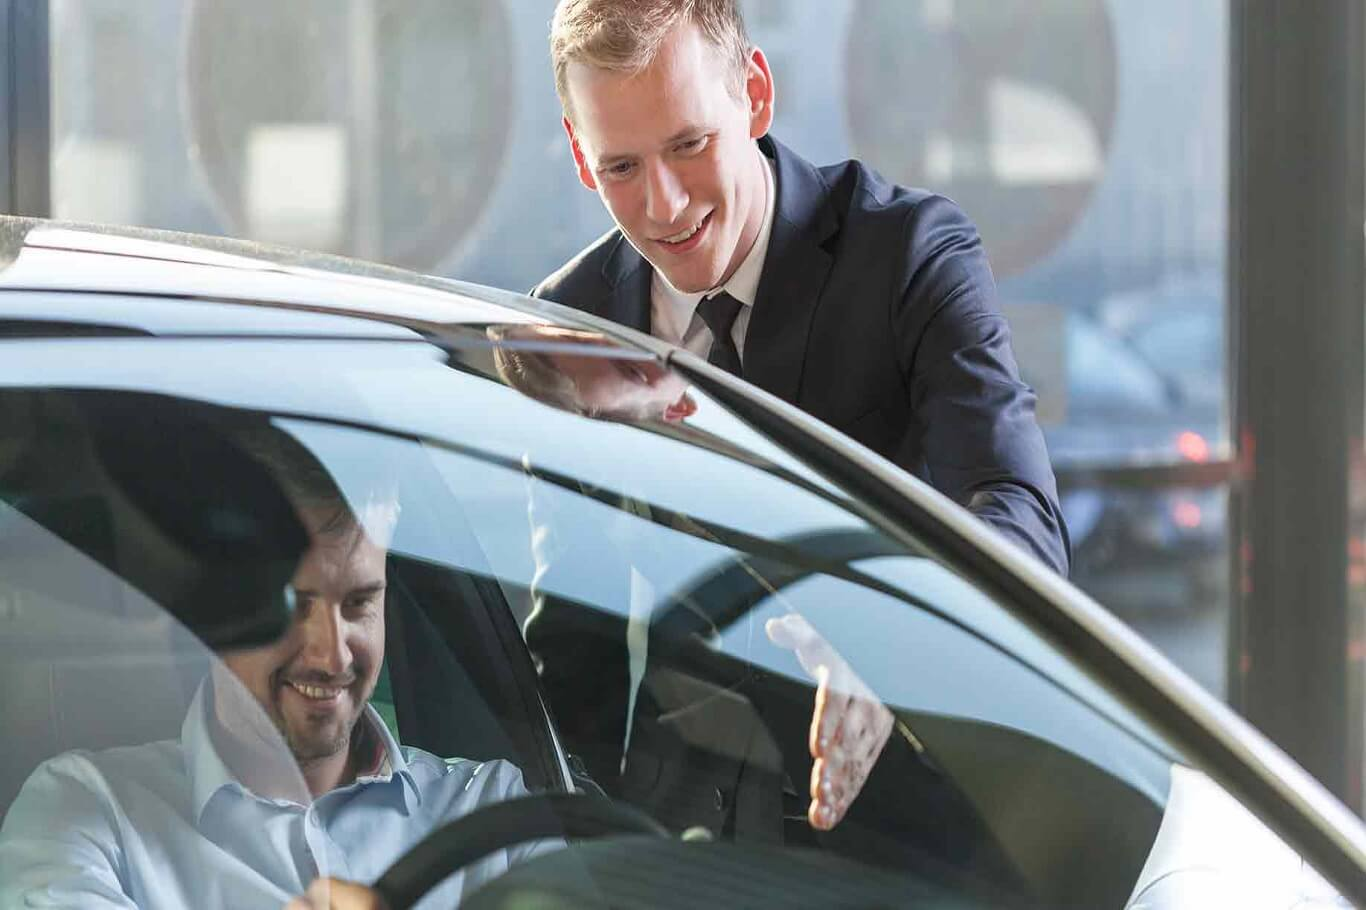 Tips on how to prepare yourself when selling your car